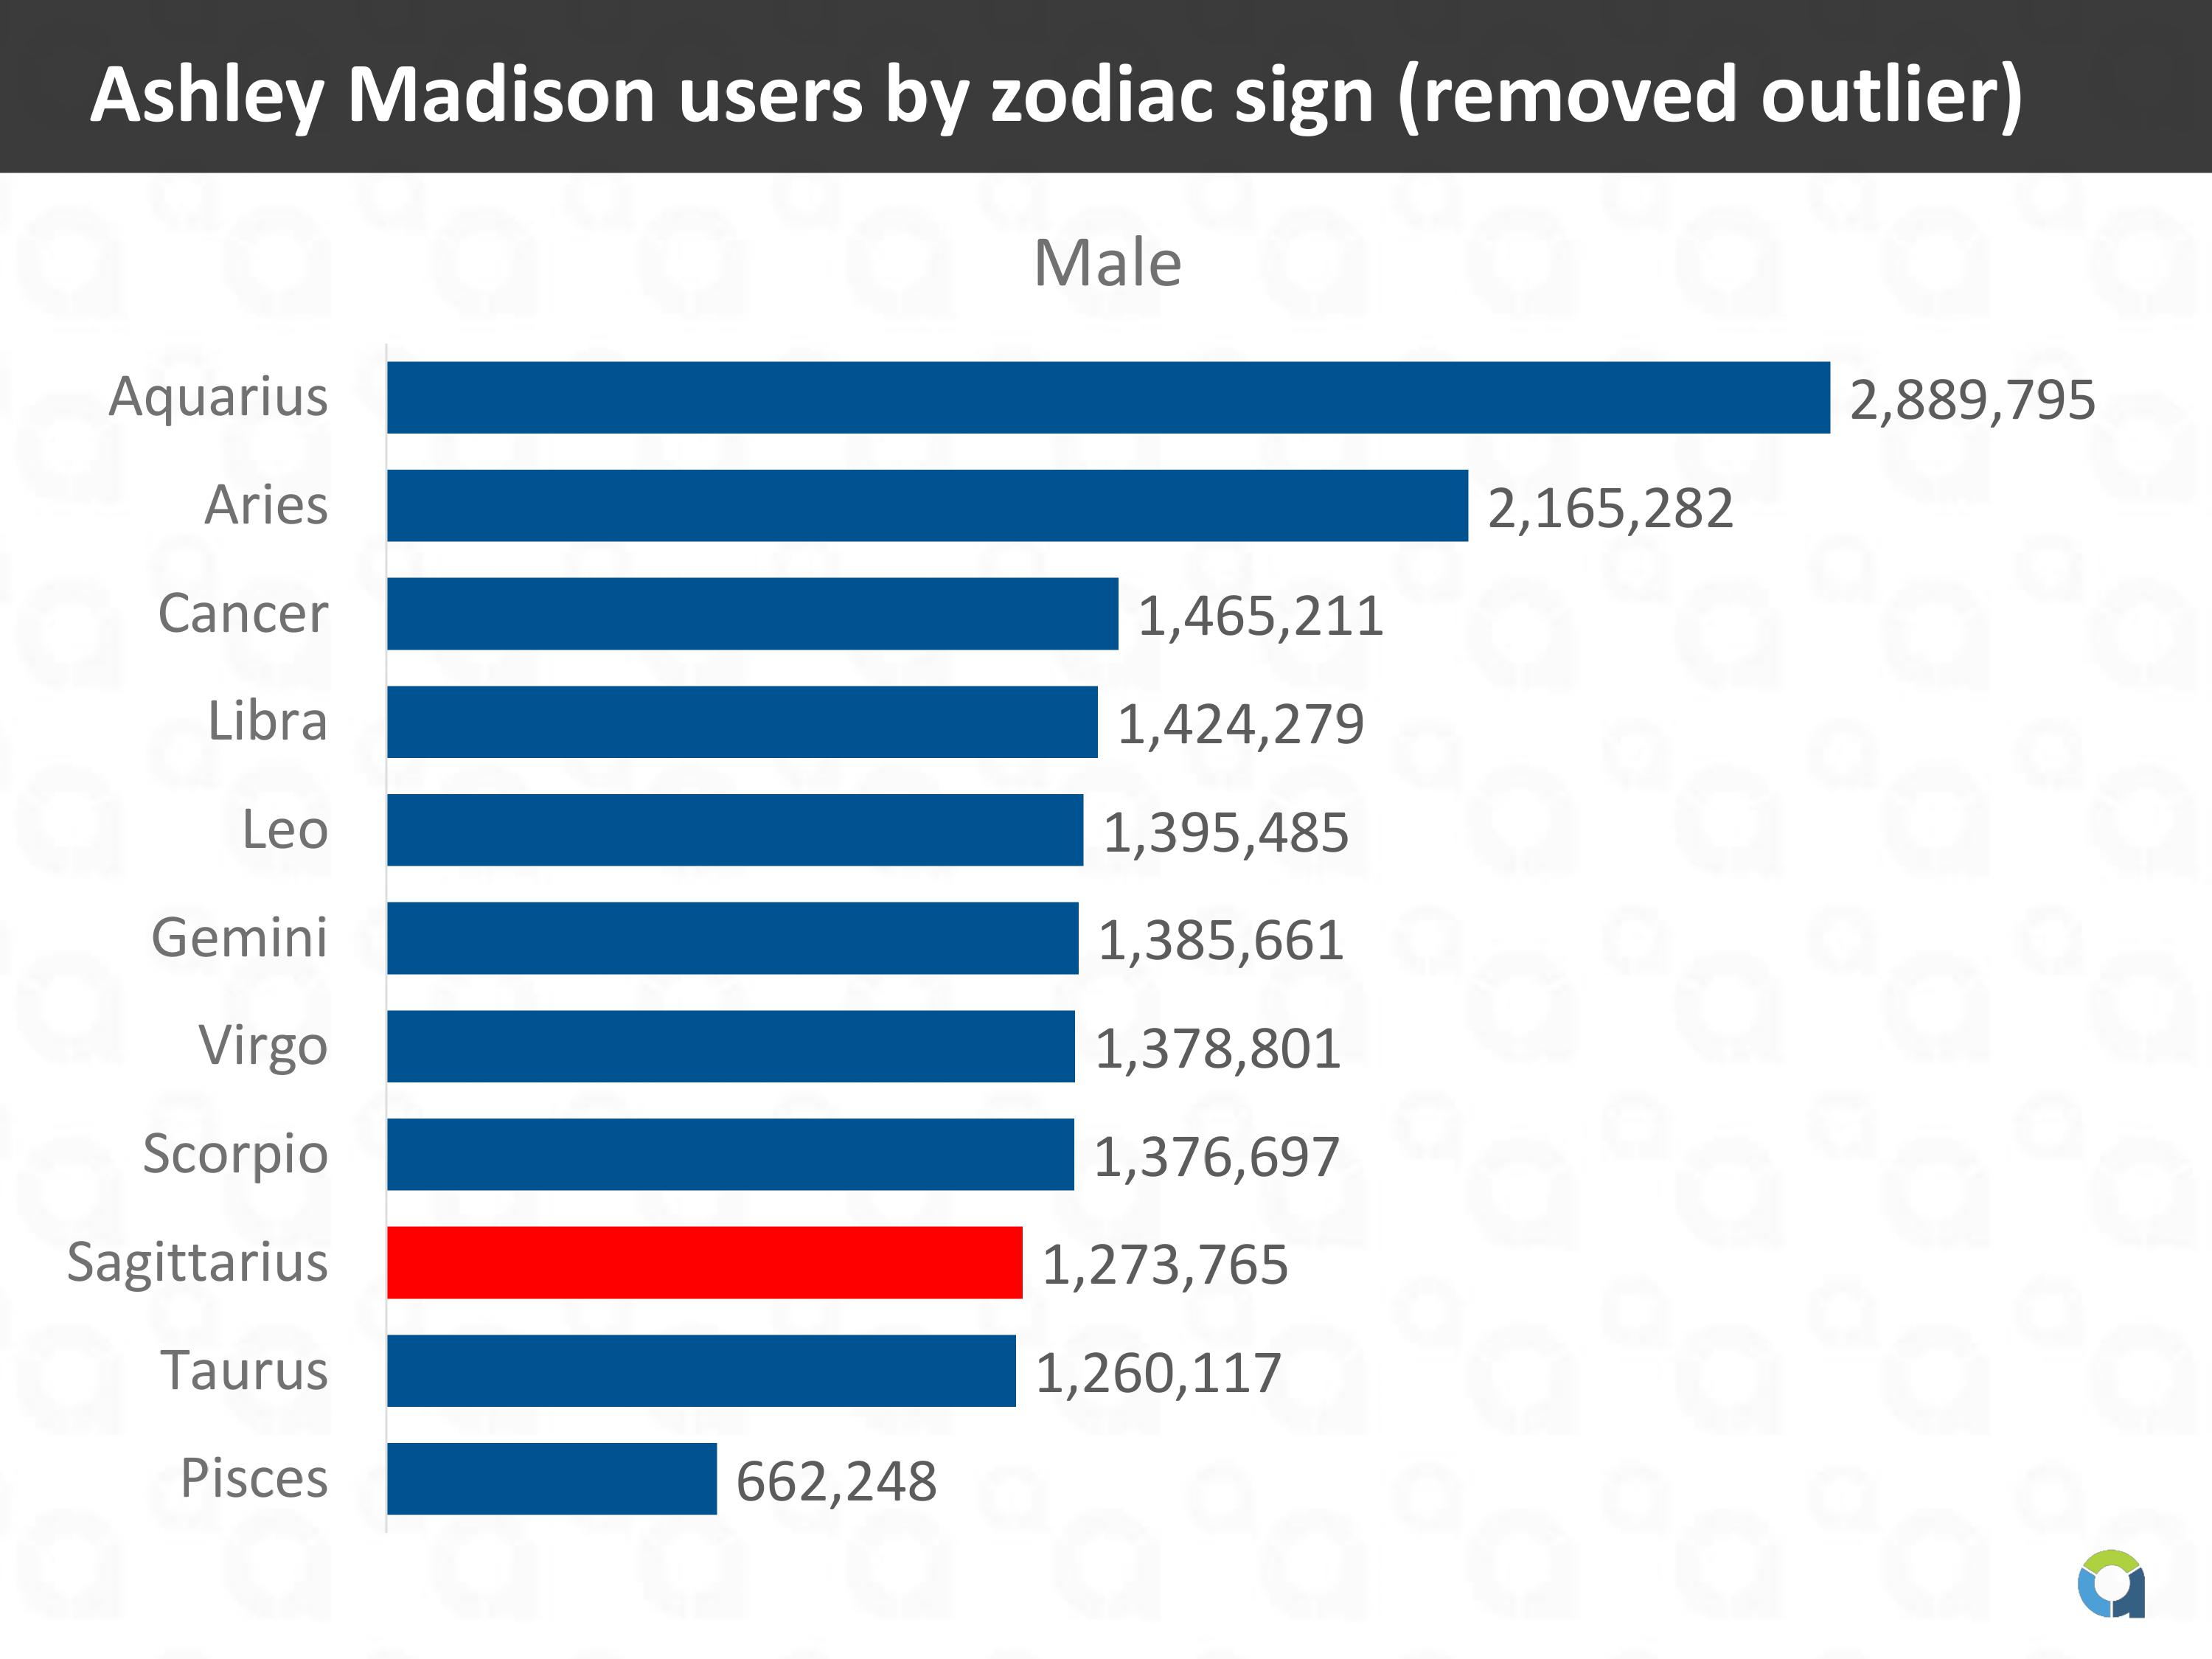 Ashley Madison users by zodiac sign (removed outlier)